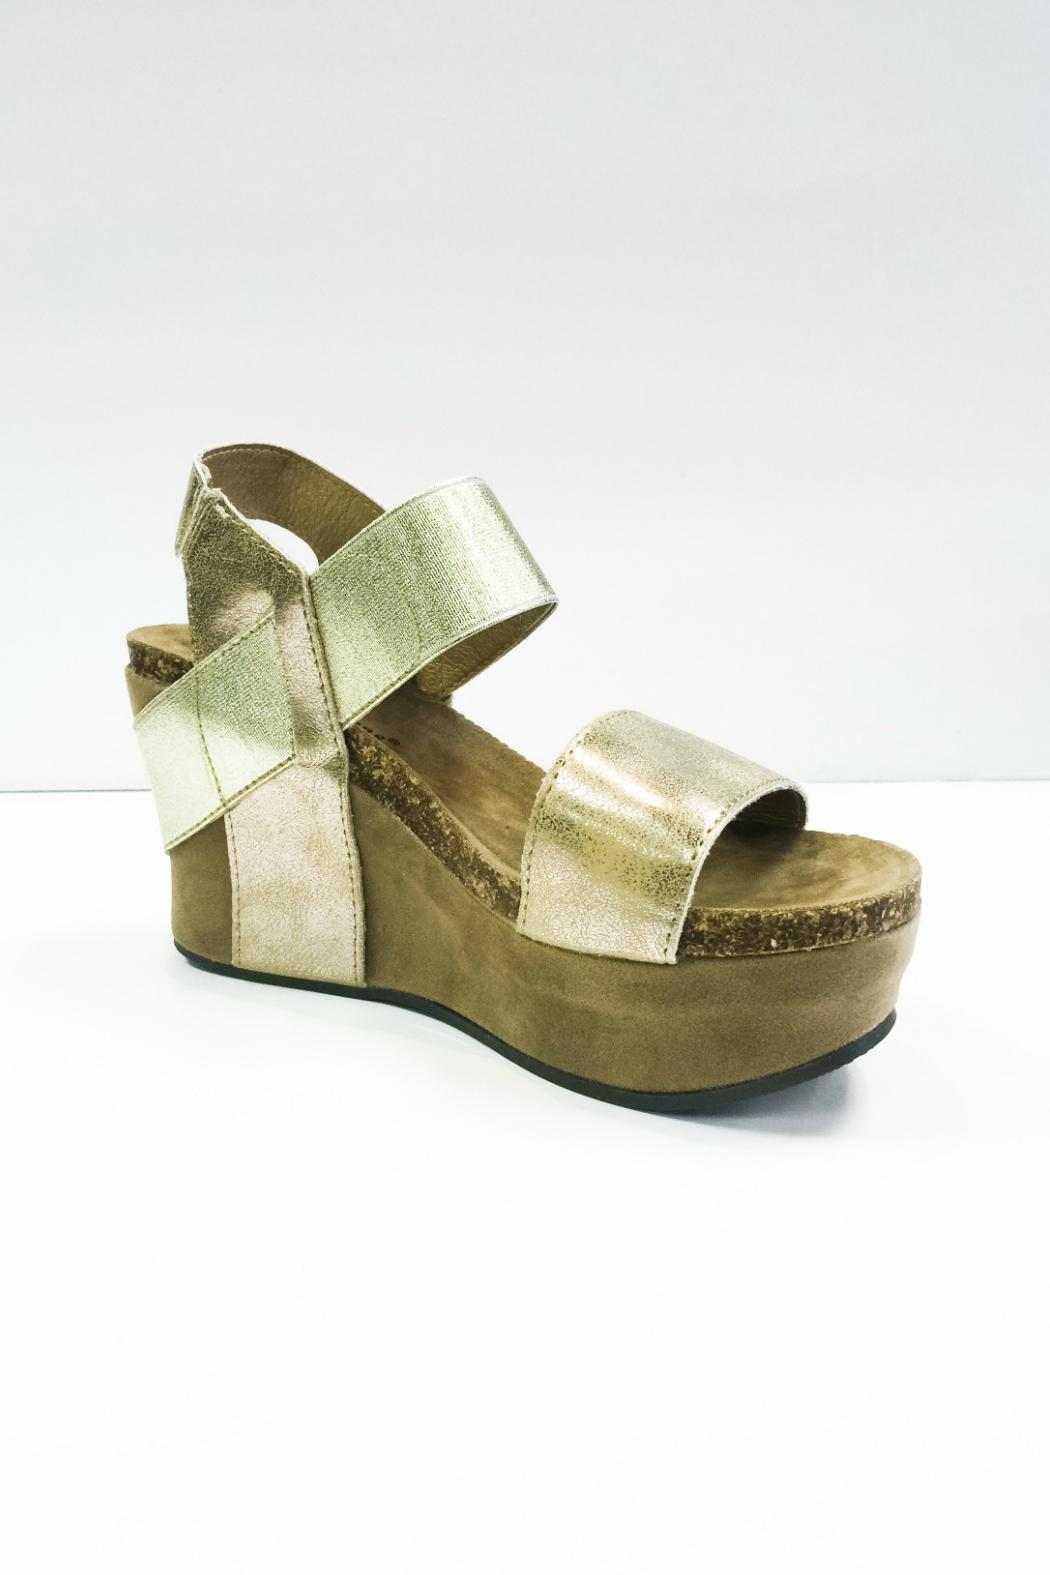 bf079cf79221 Pierre Dumas Gold Wedges from Alabama by Bohemian Bliss — Shoptiques